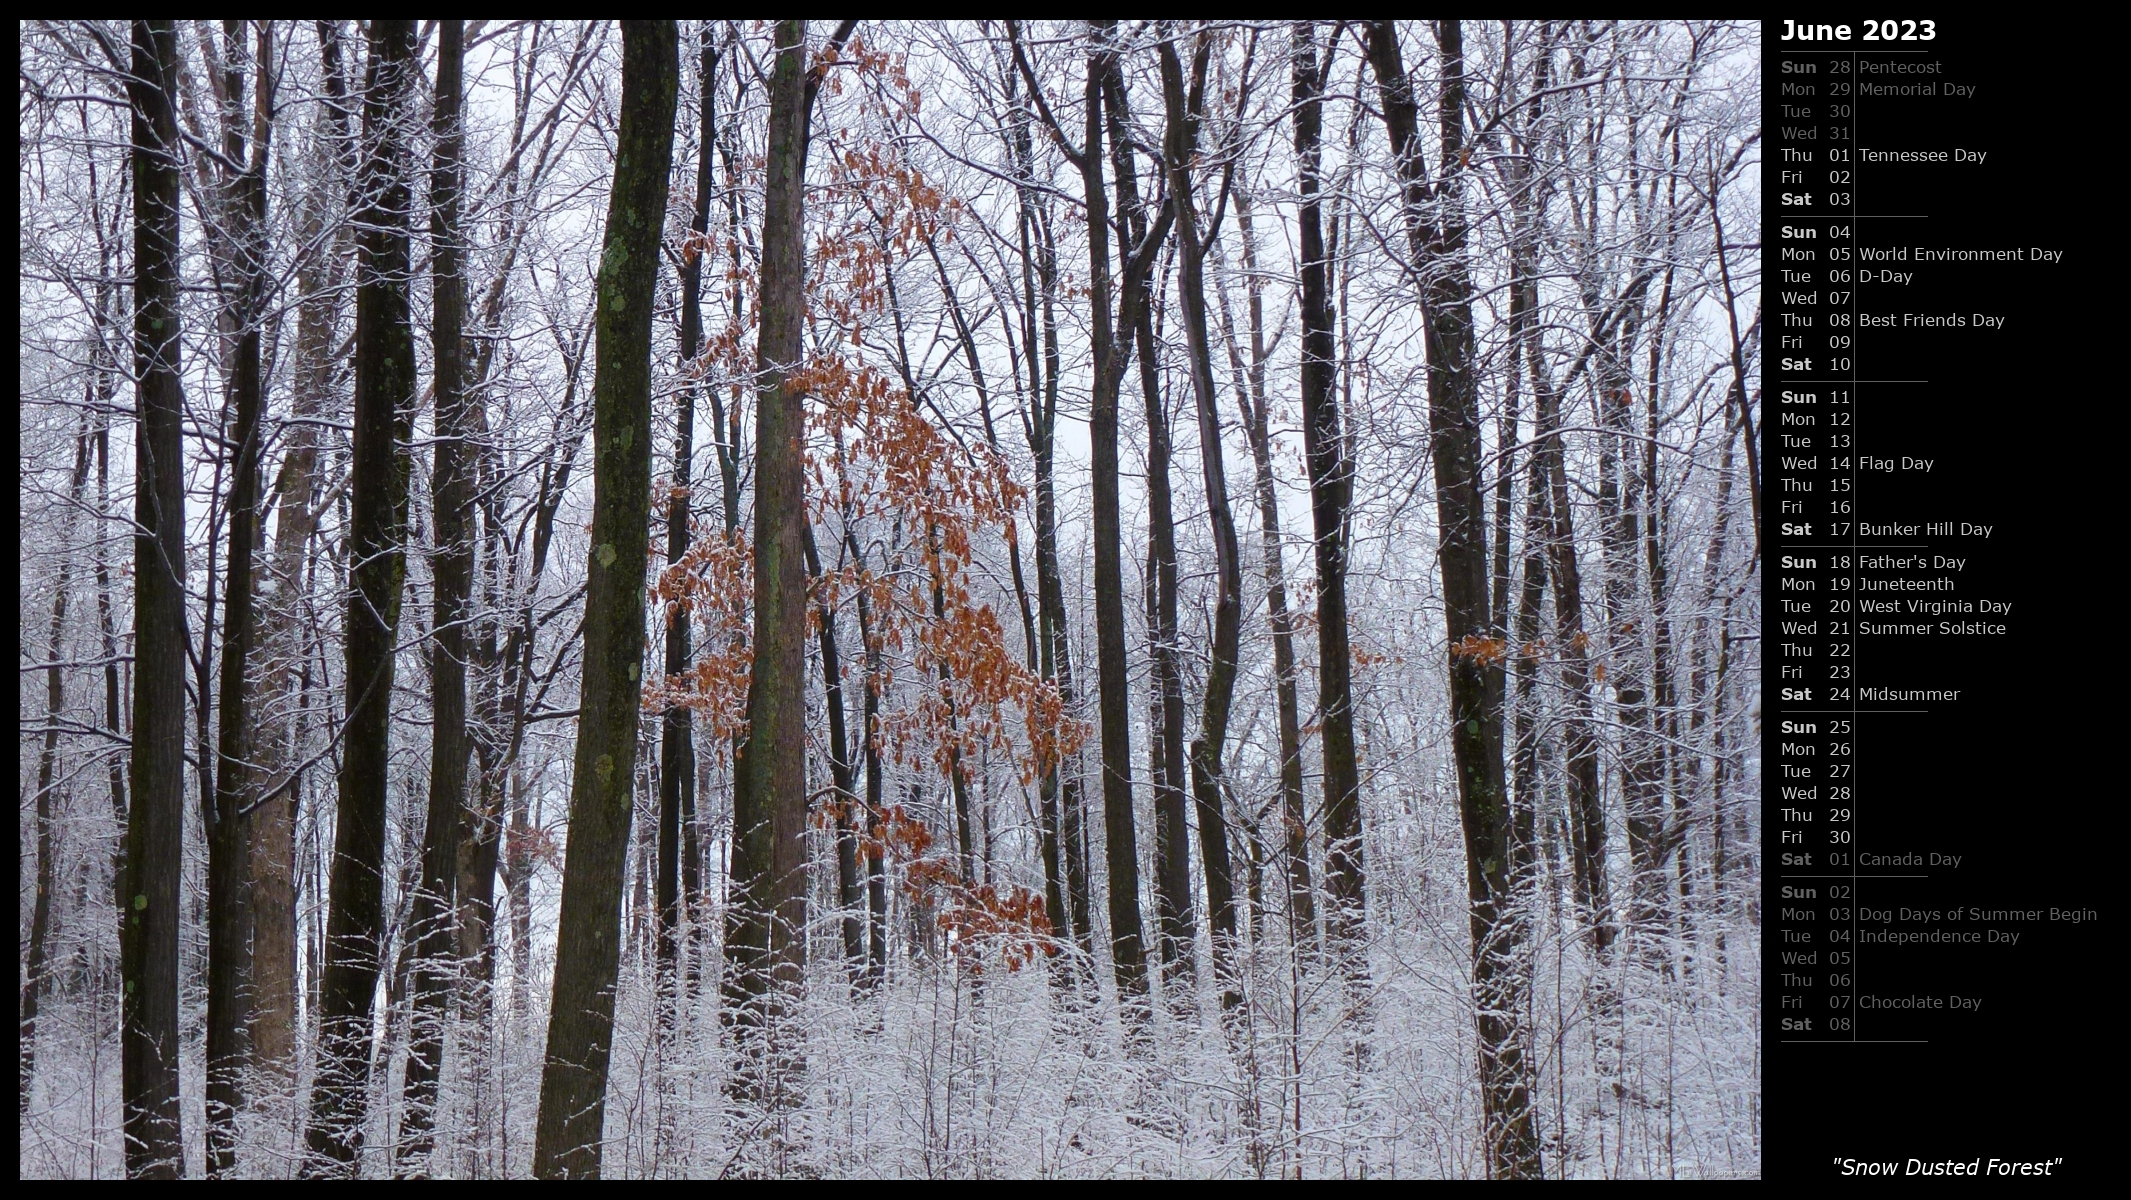 Snow Dusted Forest